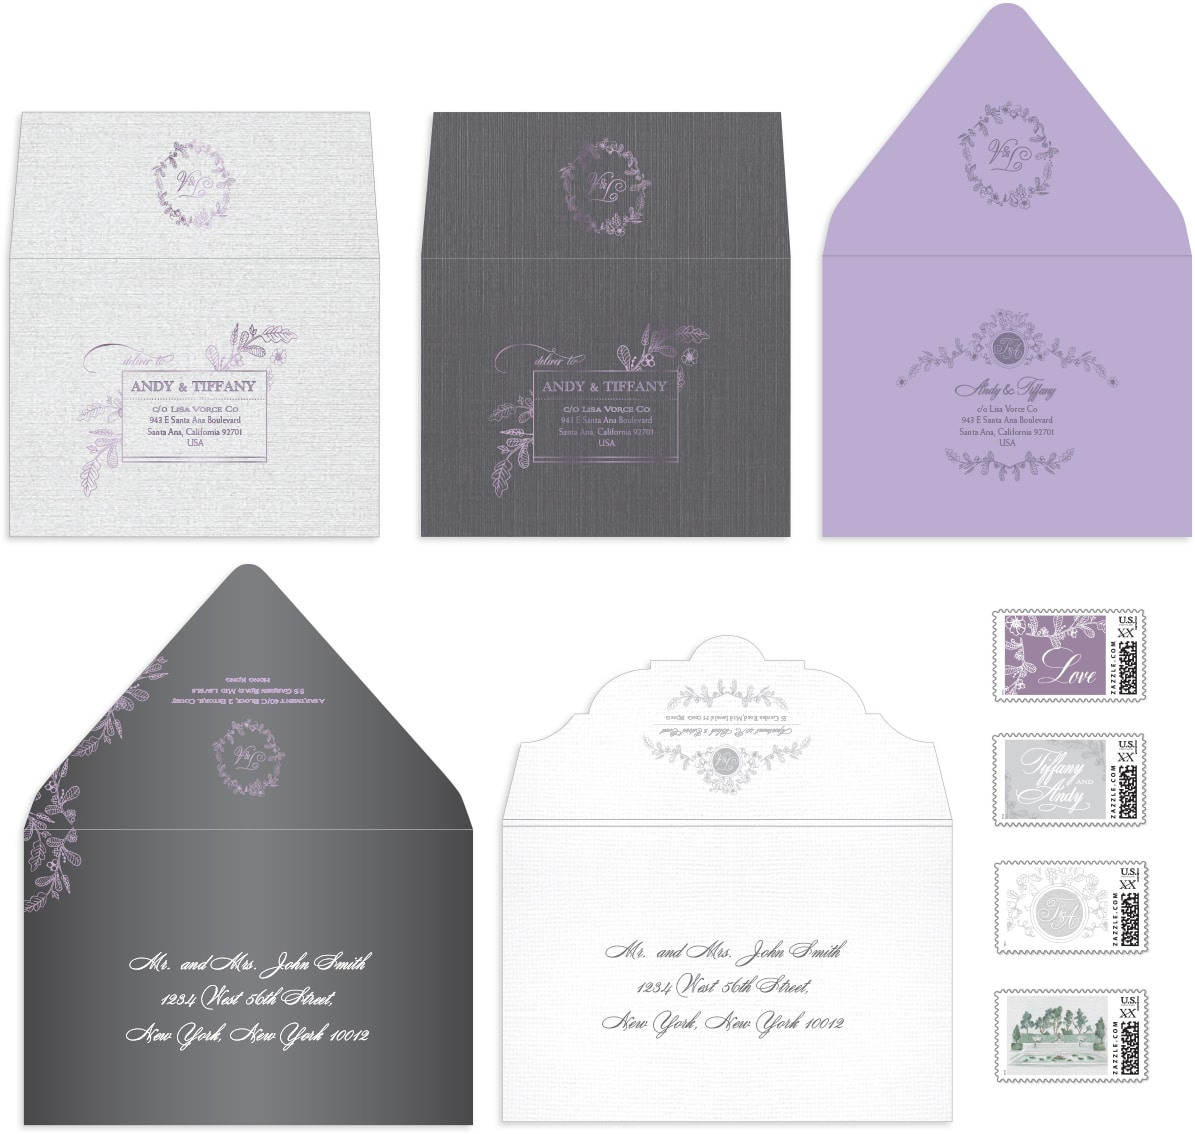 Rustic chic envelopes and stamps